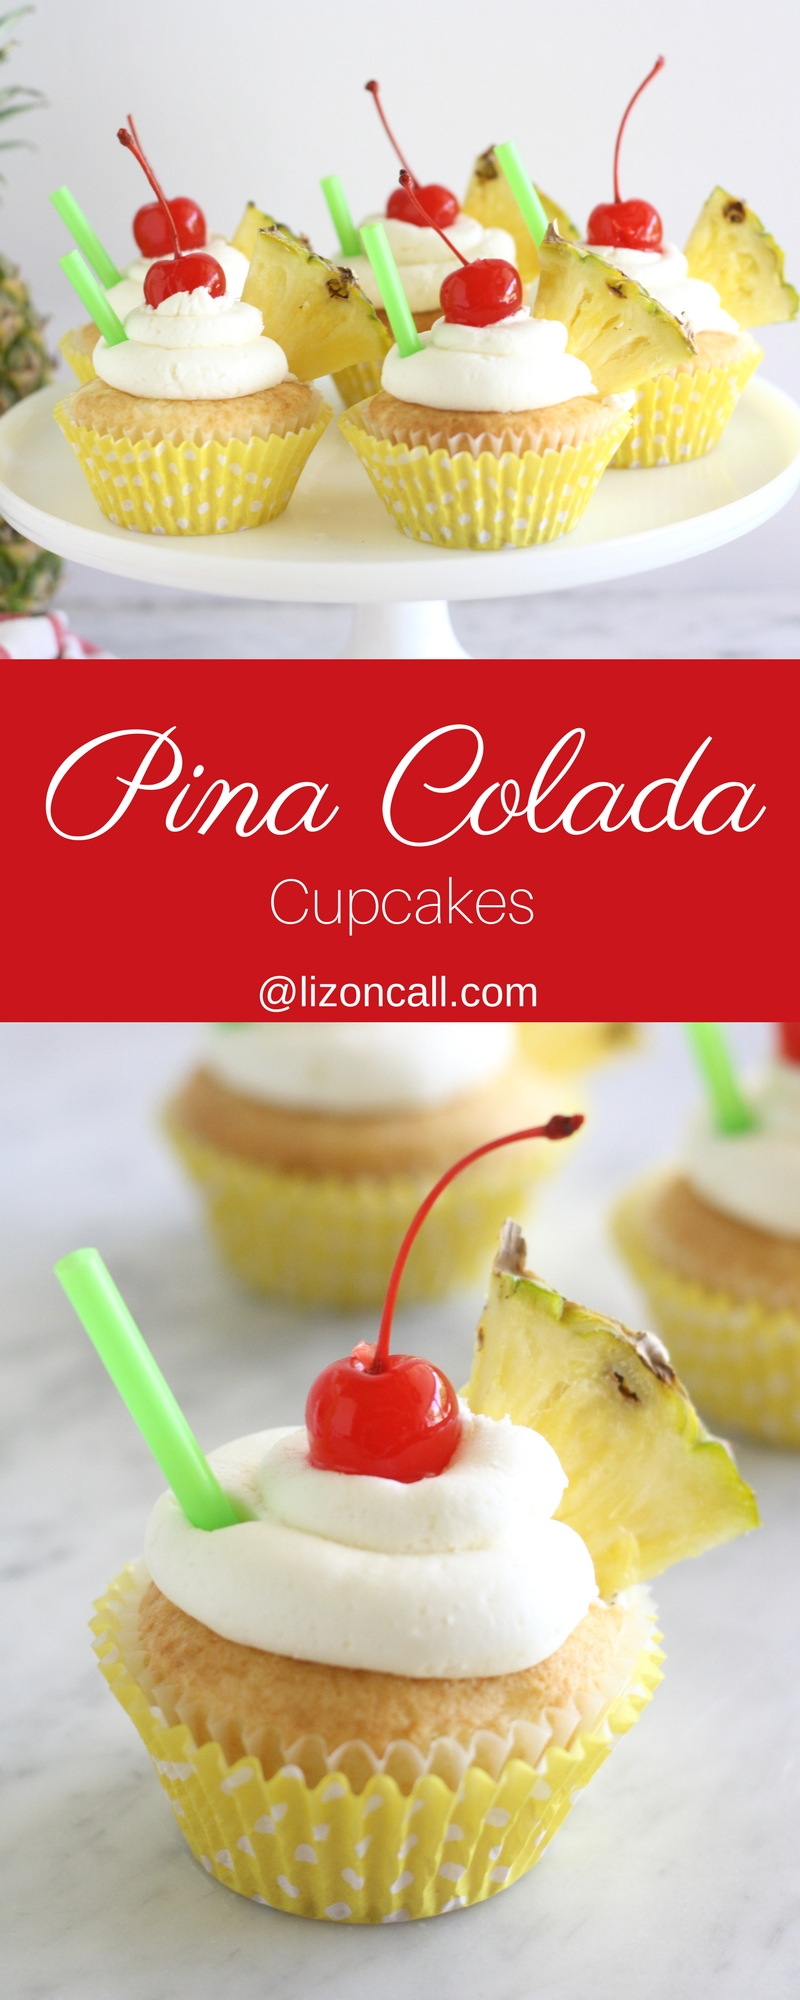 Make your favorite poolside drink into a tasty treat and whip up a batch of these pina colada cupcakes.